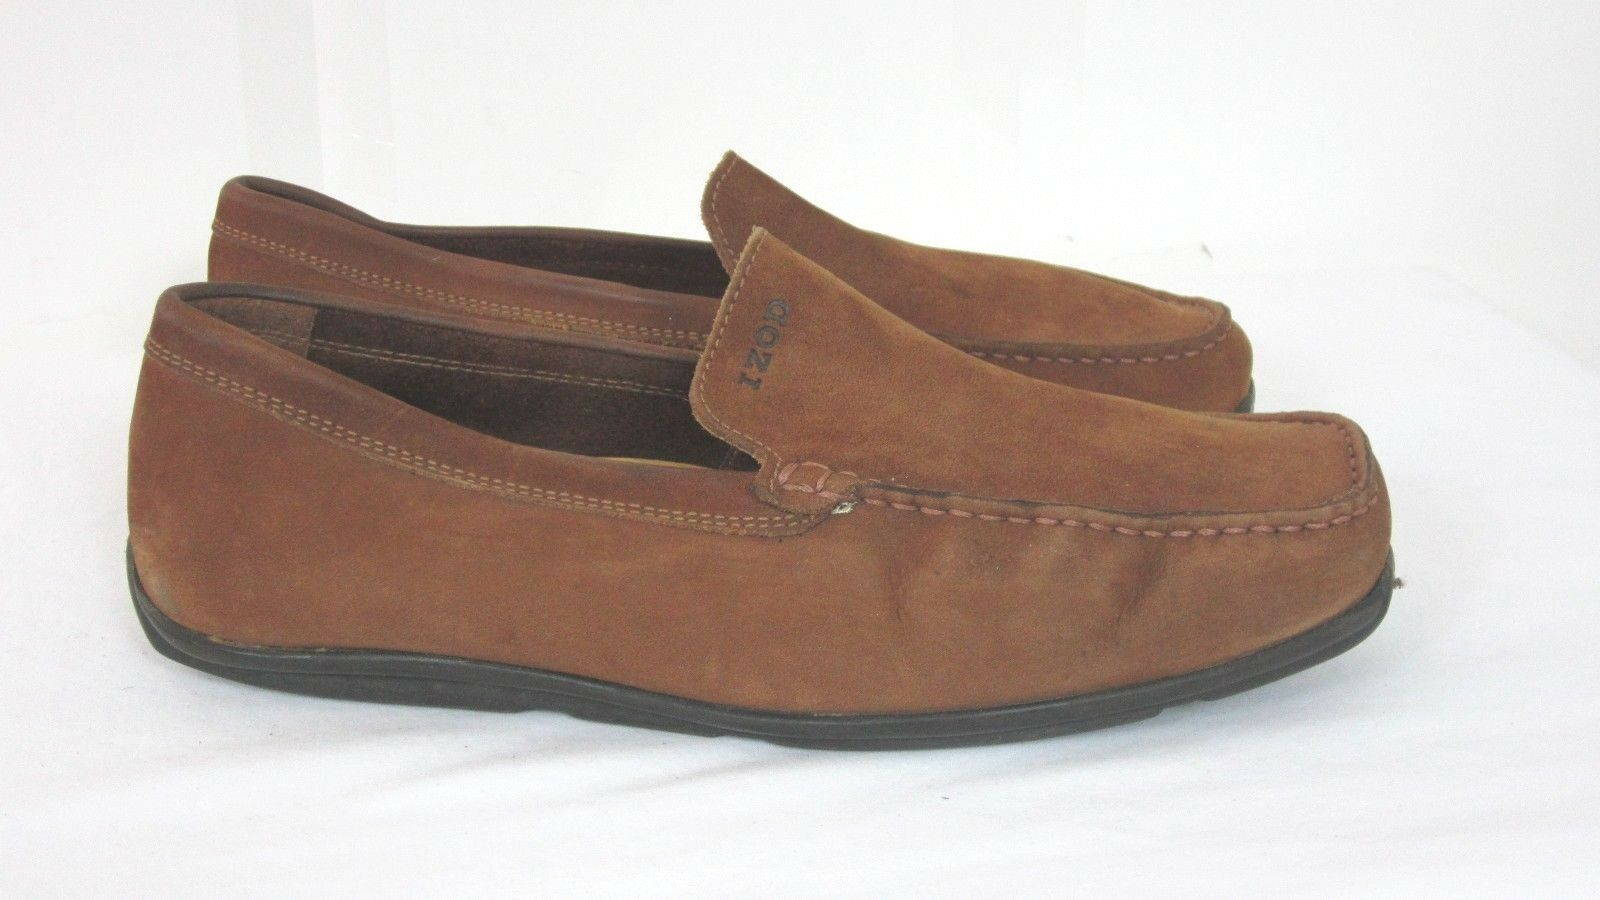 e19eb7f0287c Izod Mens Apex Slip On Loafers Loafers Loafers Shoes Tan Leather Driving  Moccasins Size 10 M